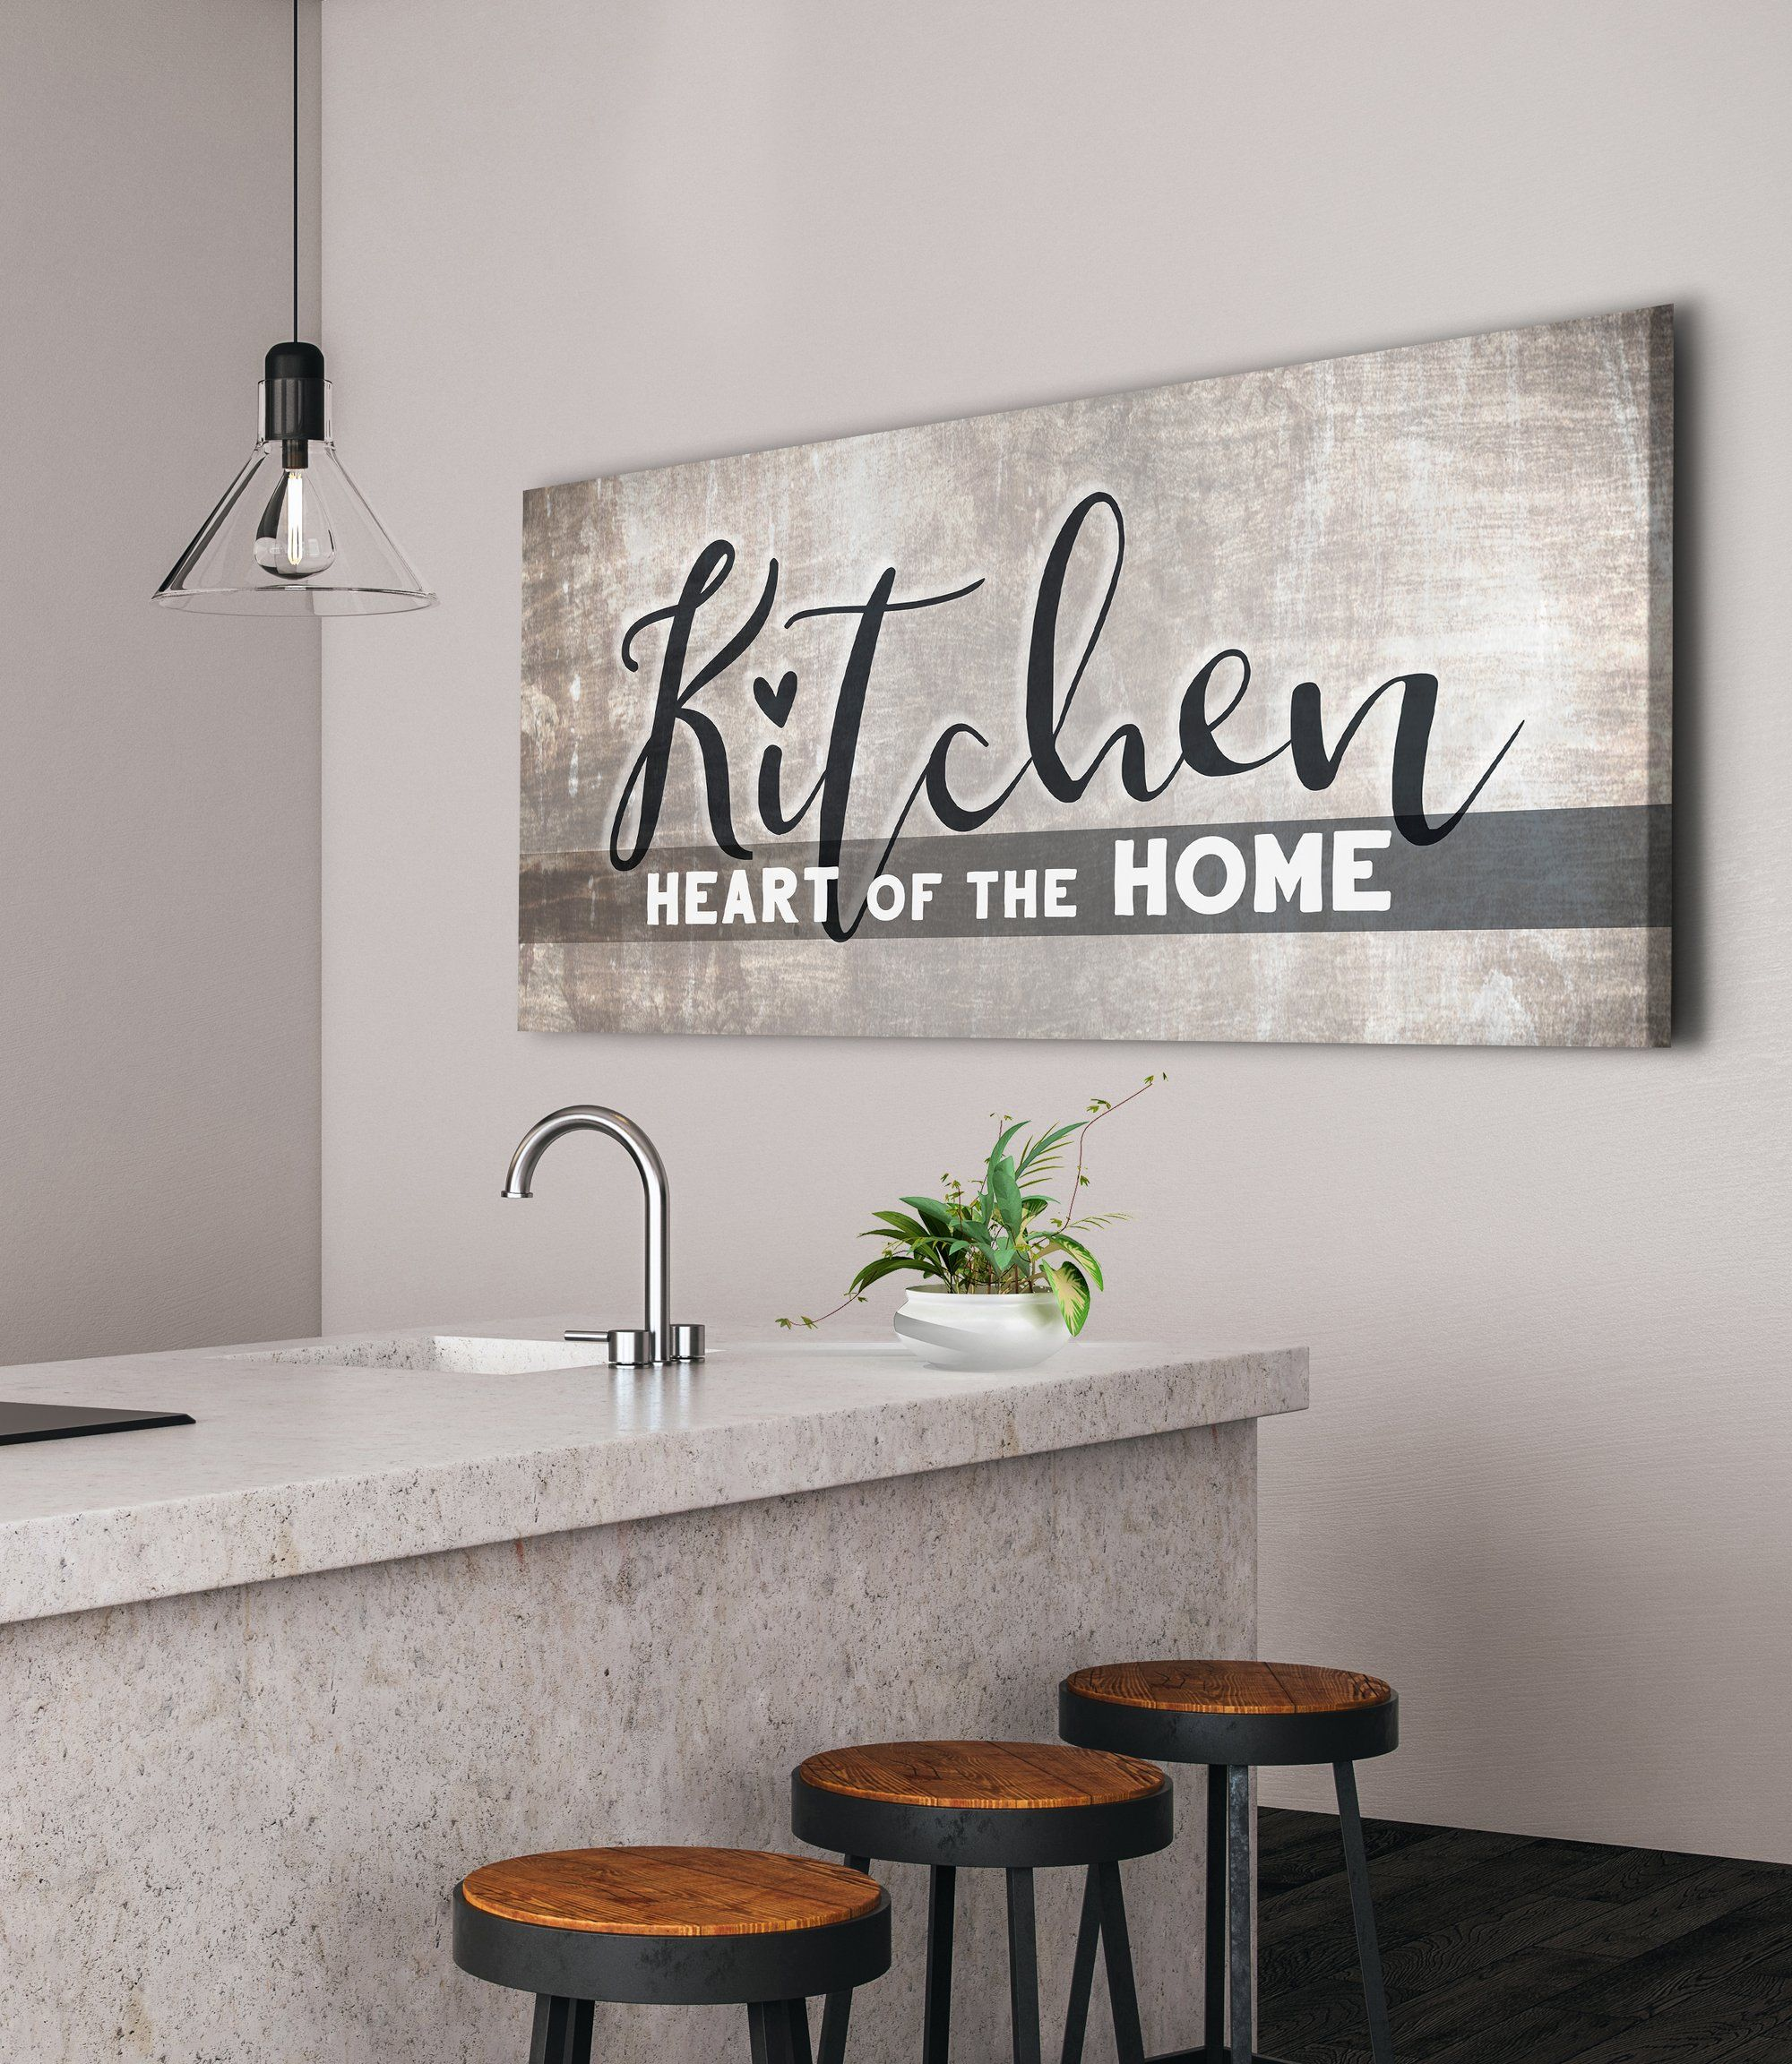 Kitchen Wall Art Kitchen Heart Of The Home Wood Frame Ready To Hang Kitchen Wall Art Family Wall Art Family Wall Kitchen is the heart of the home wall art